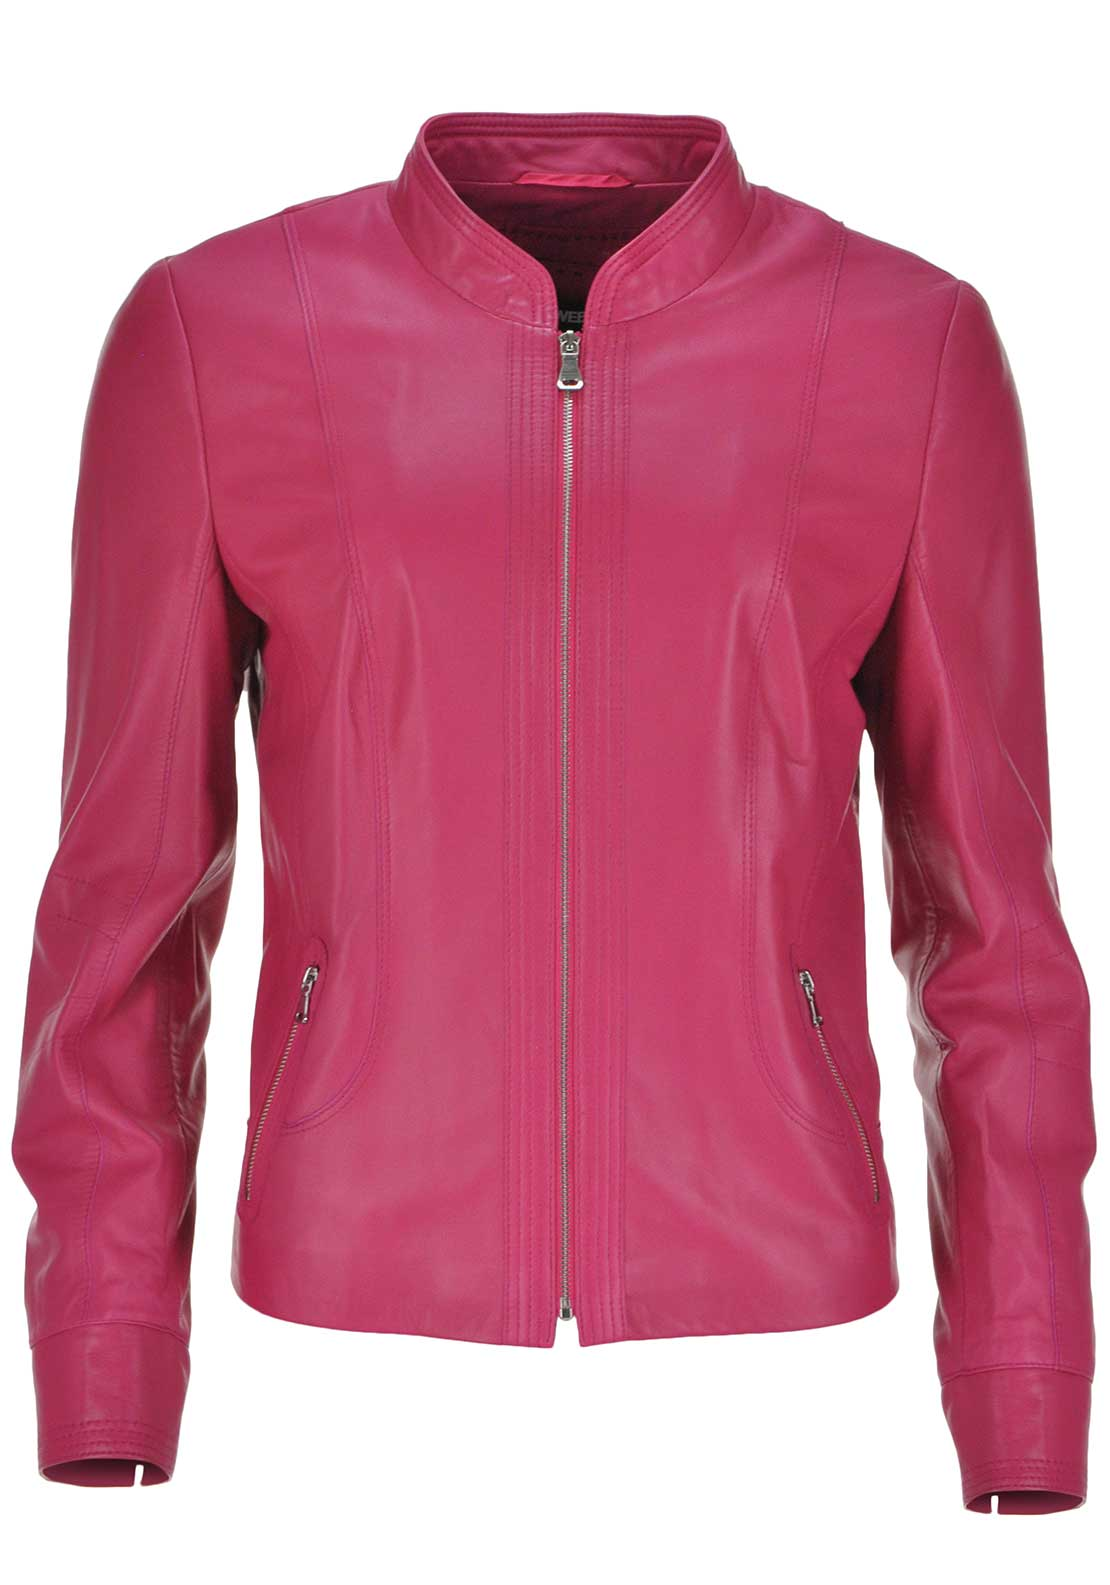 Gerry Weber Leather Jacket, Pink